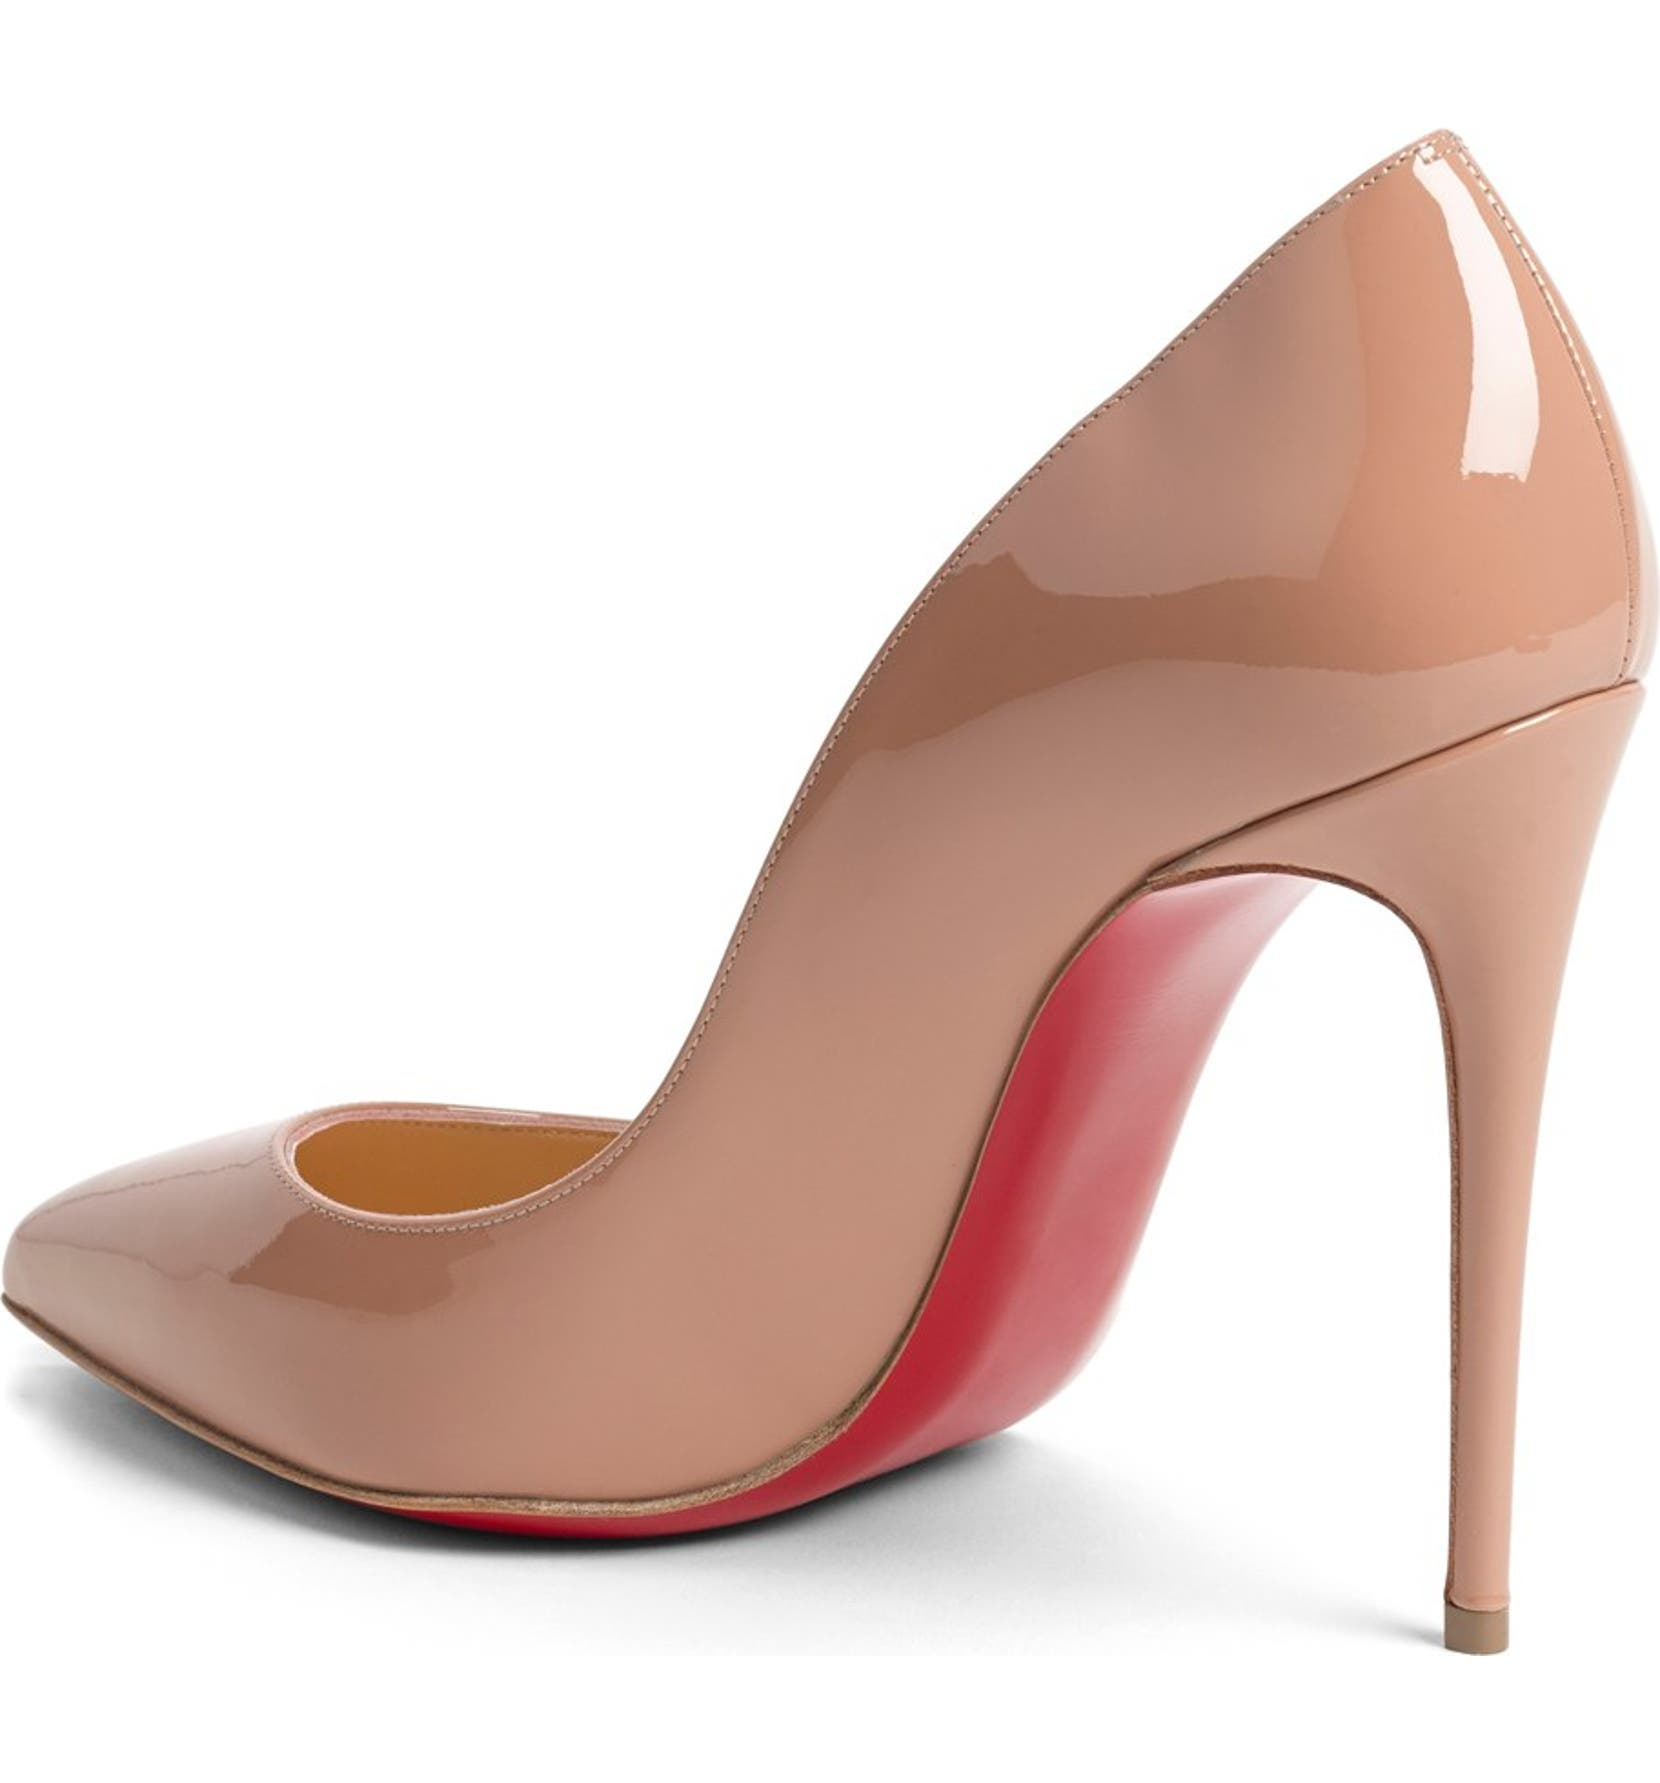 dd6501f1c6f Pigalle Follies Pointy Toe Pump